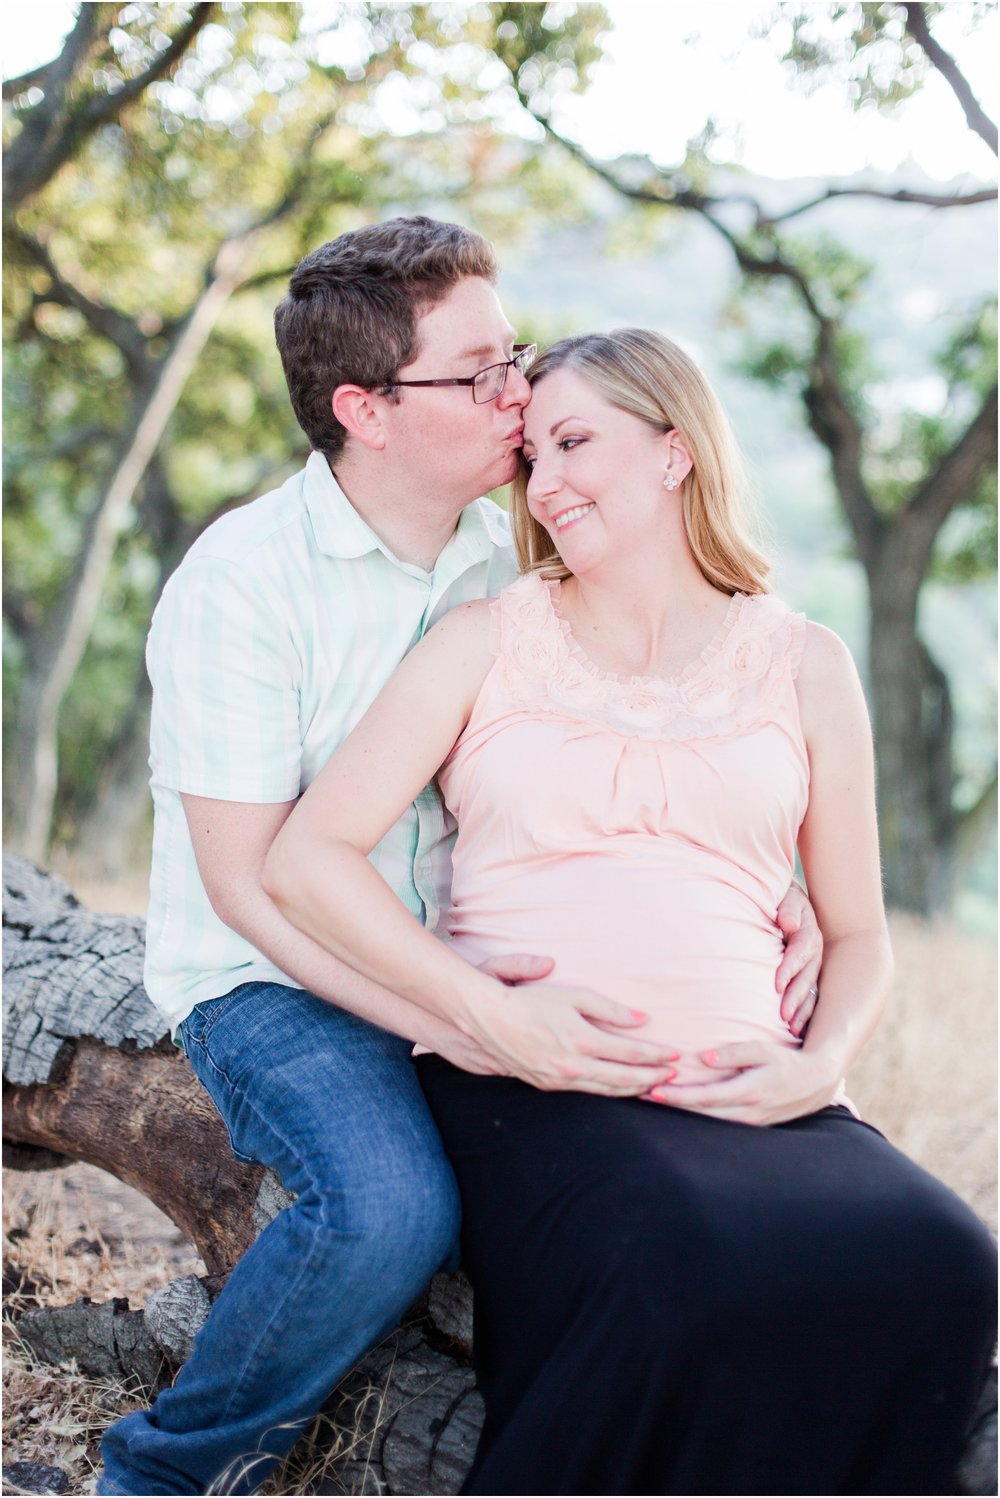 Picchetti Winery maternity pictures by Briana Calderon Photography_2357.jpg